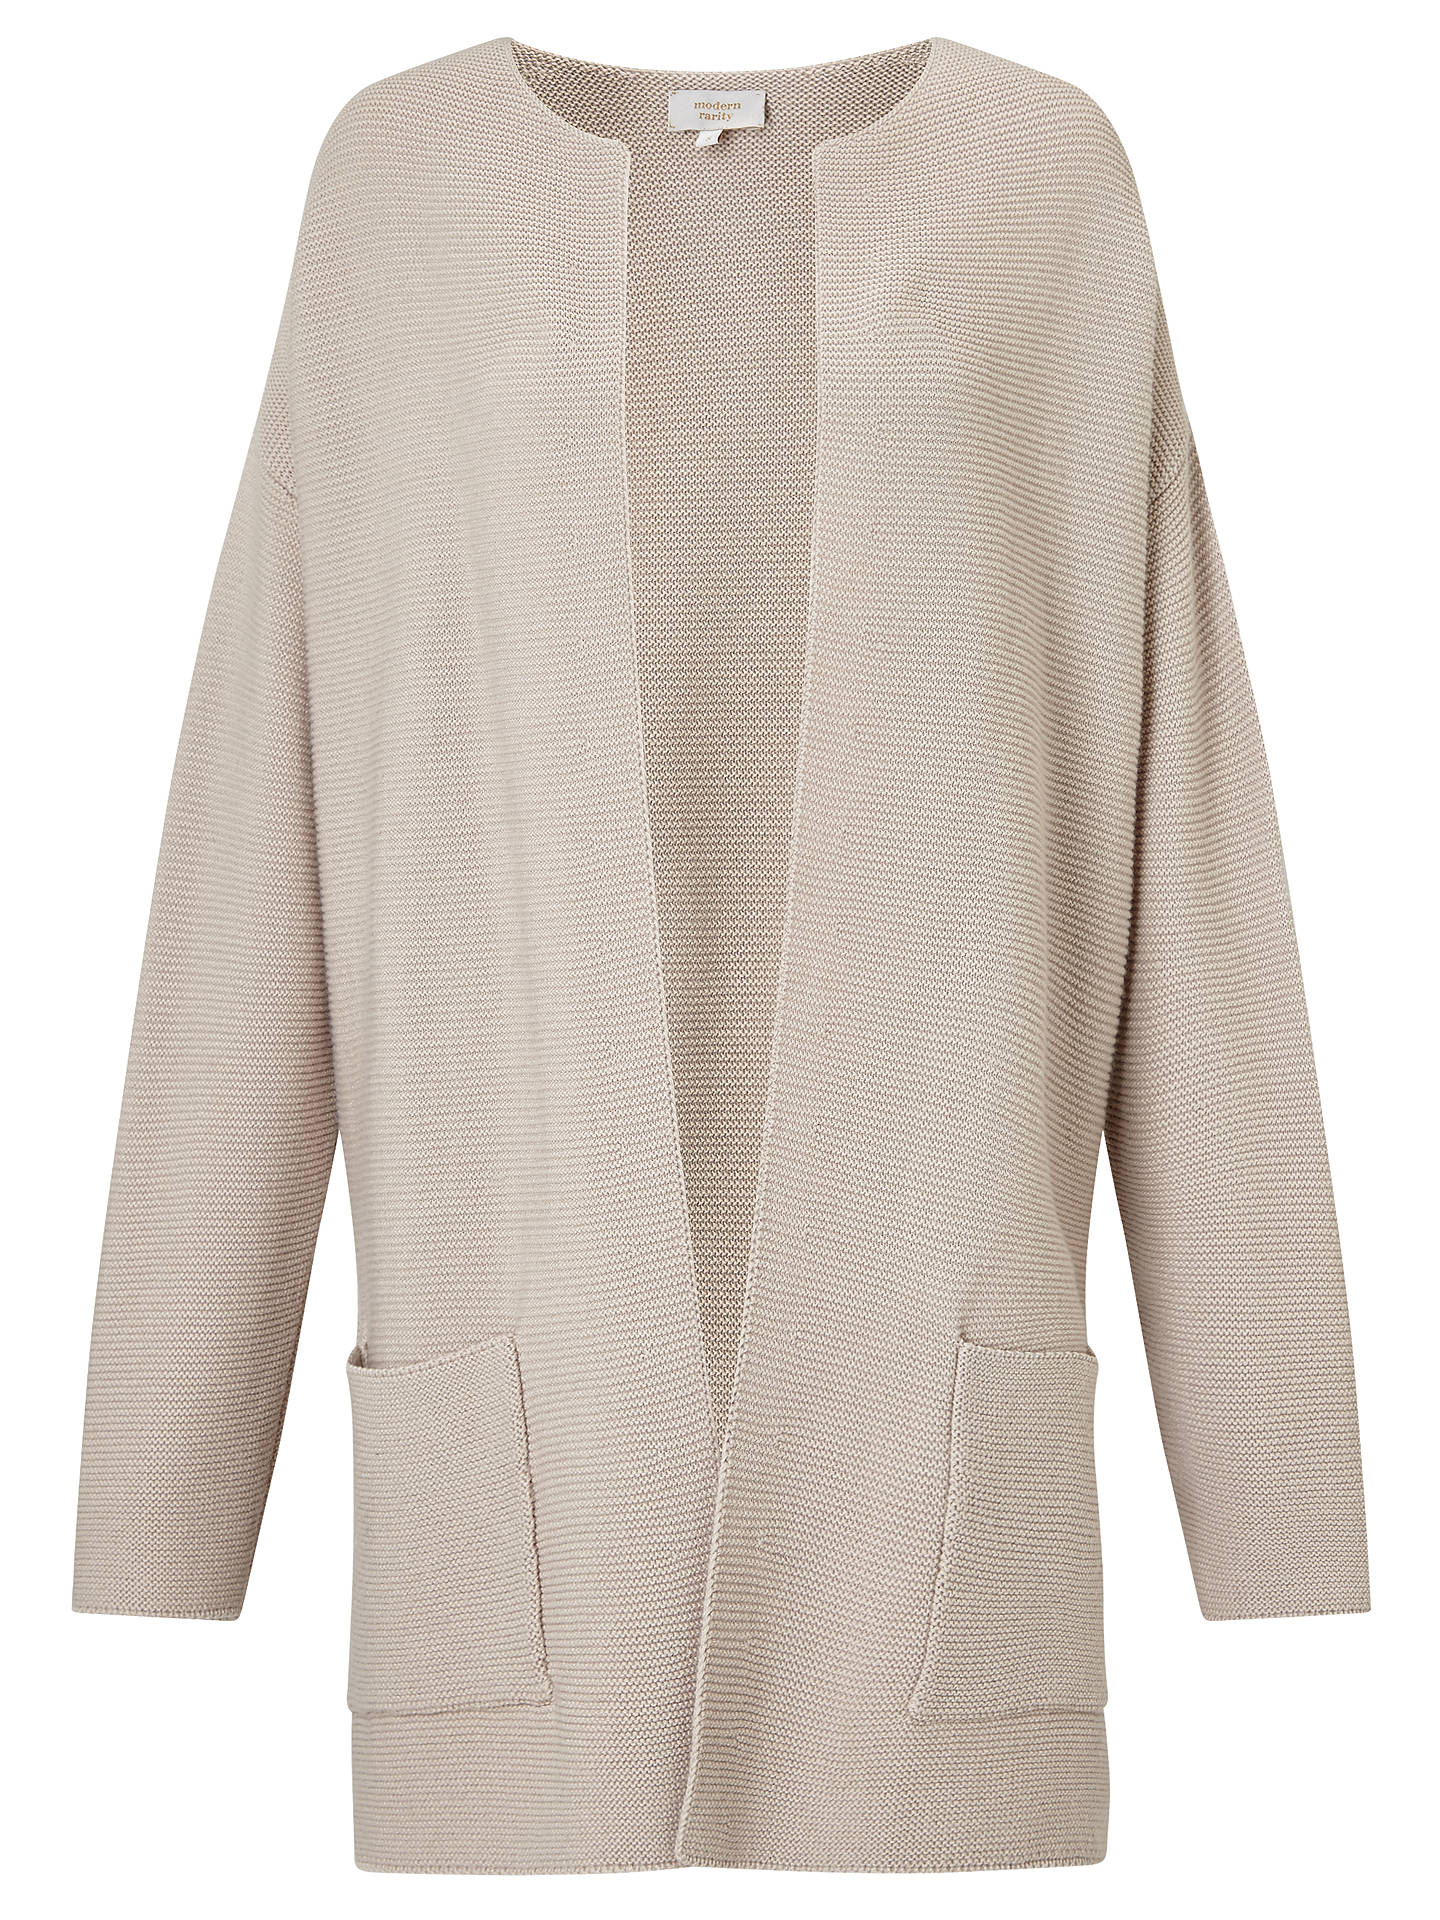 BuyModern Rarity Links Cardigan, Dusty Pink, XS Online at johnlewis.com